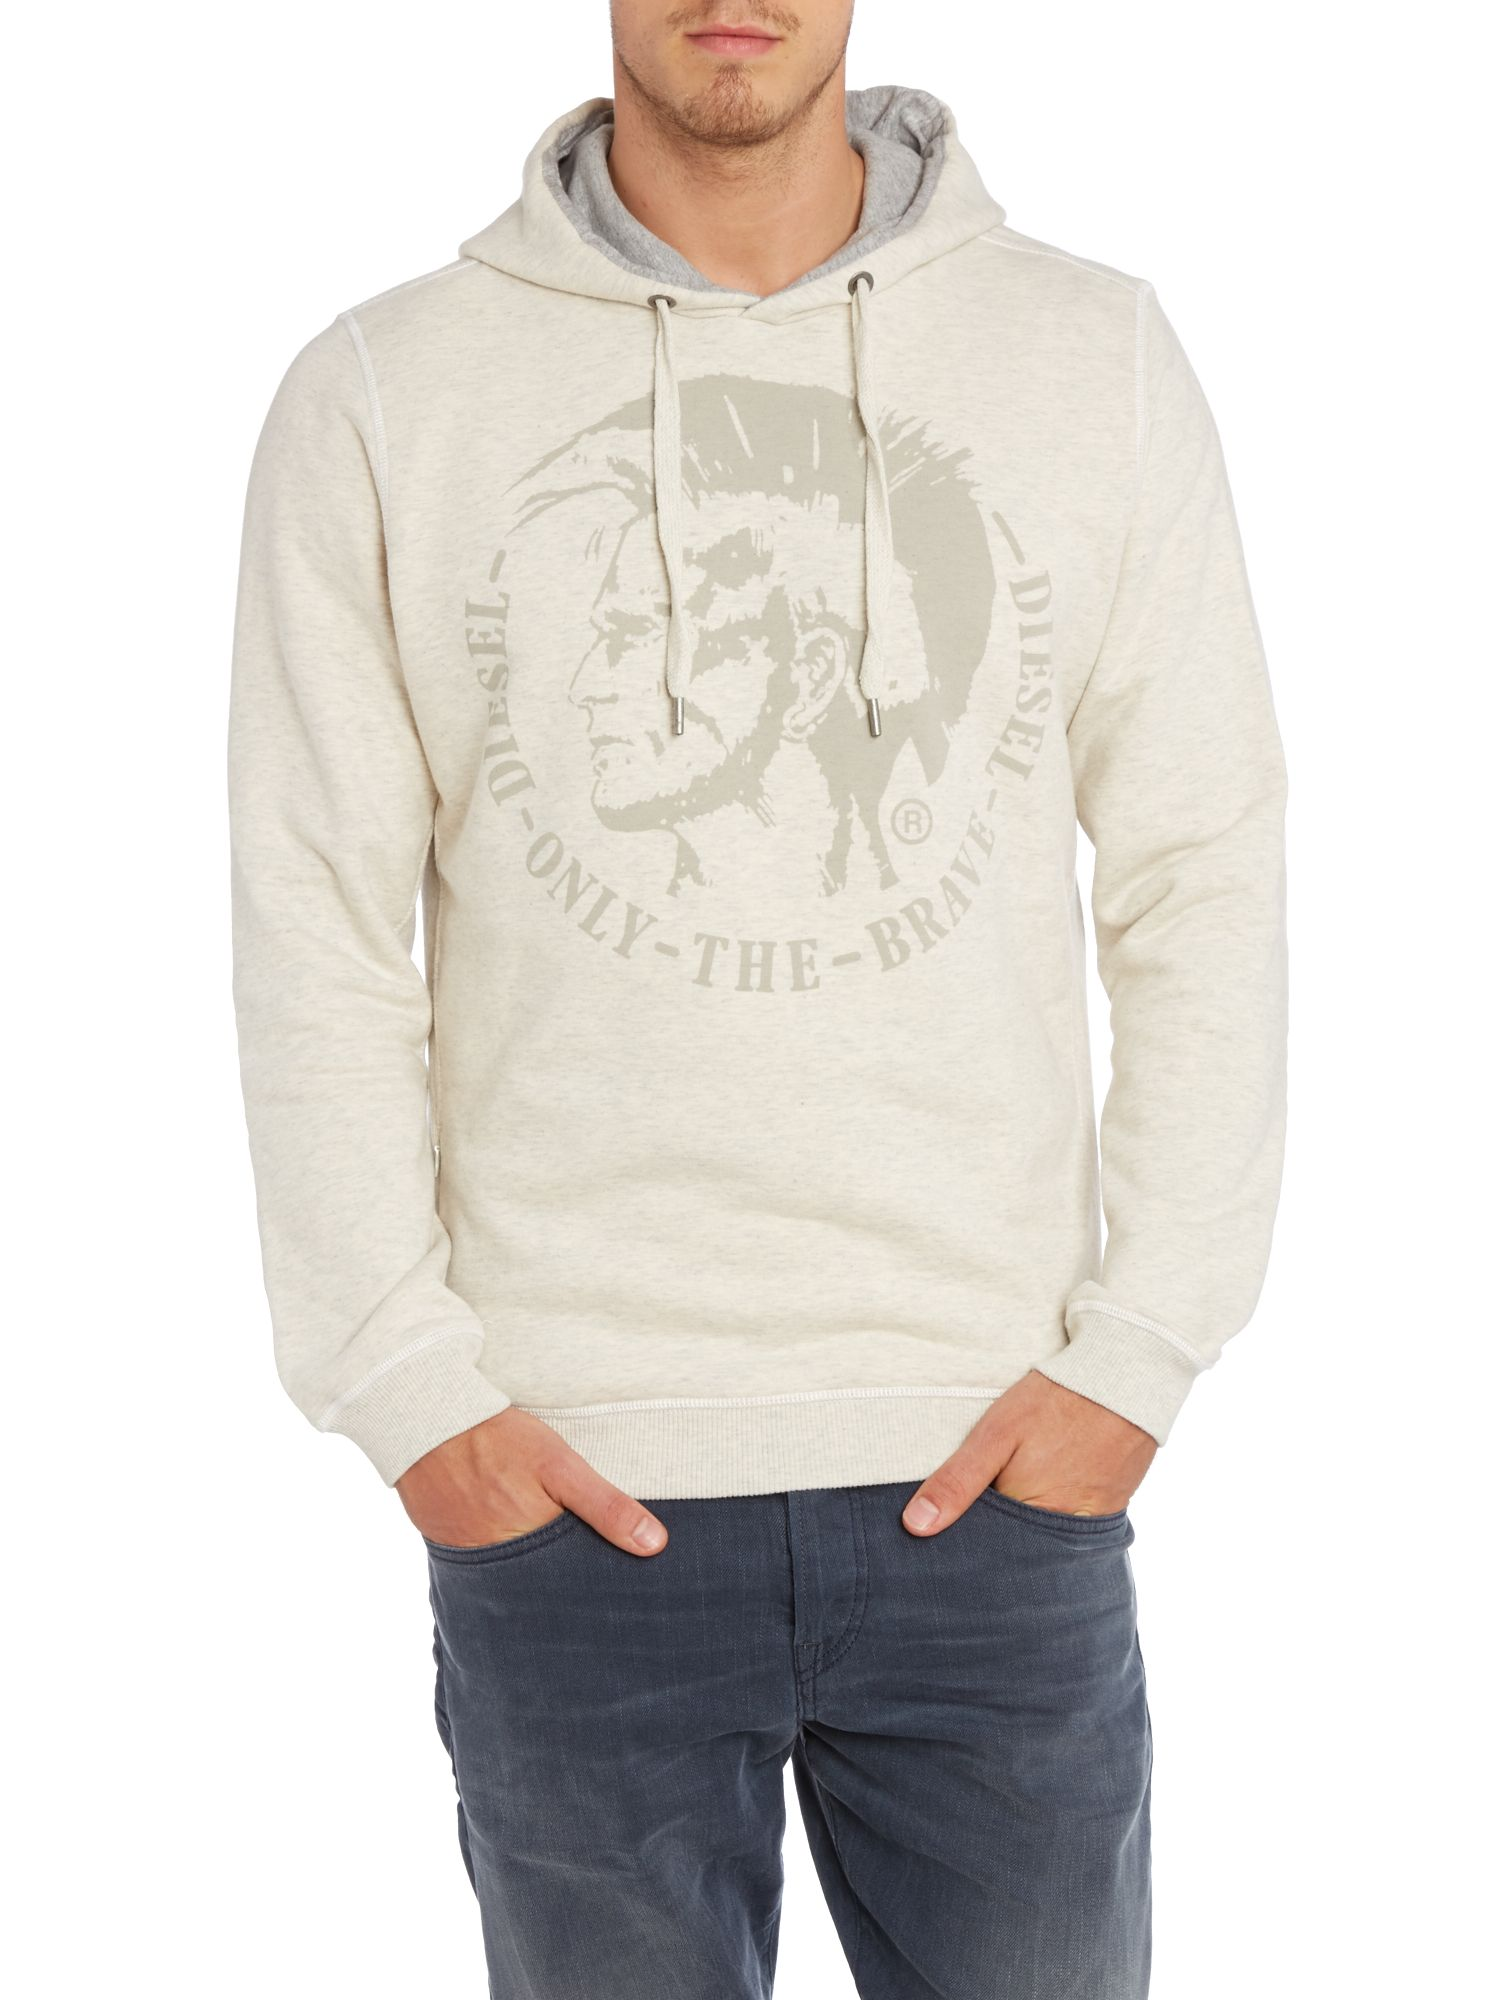 Mohican hoody